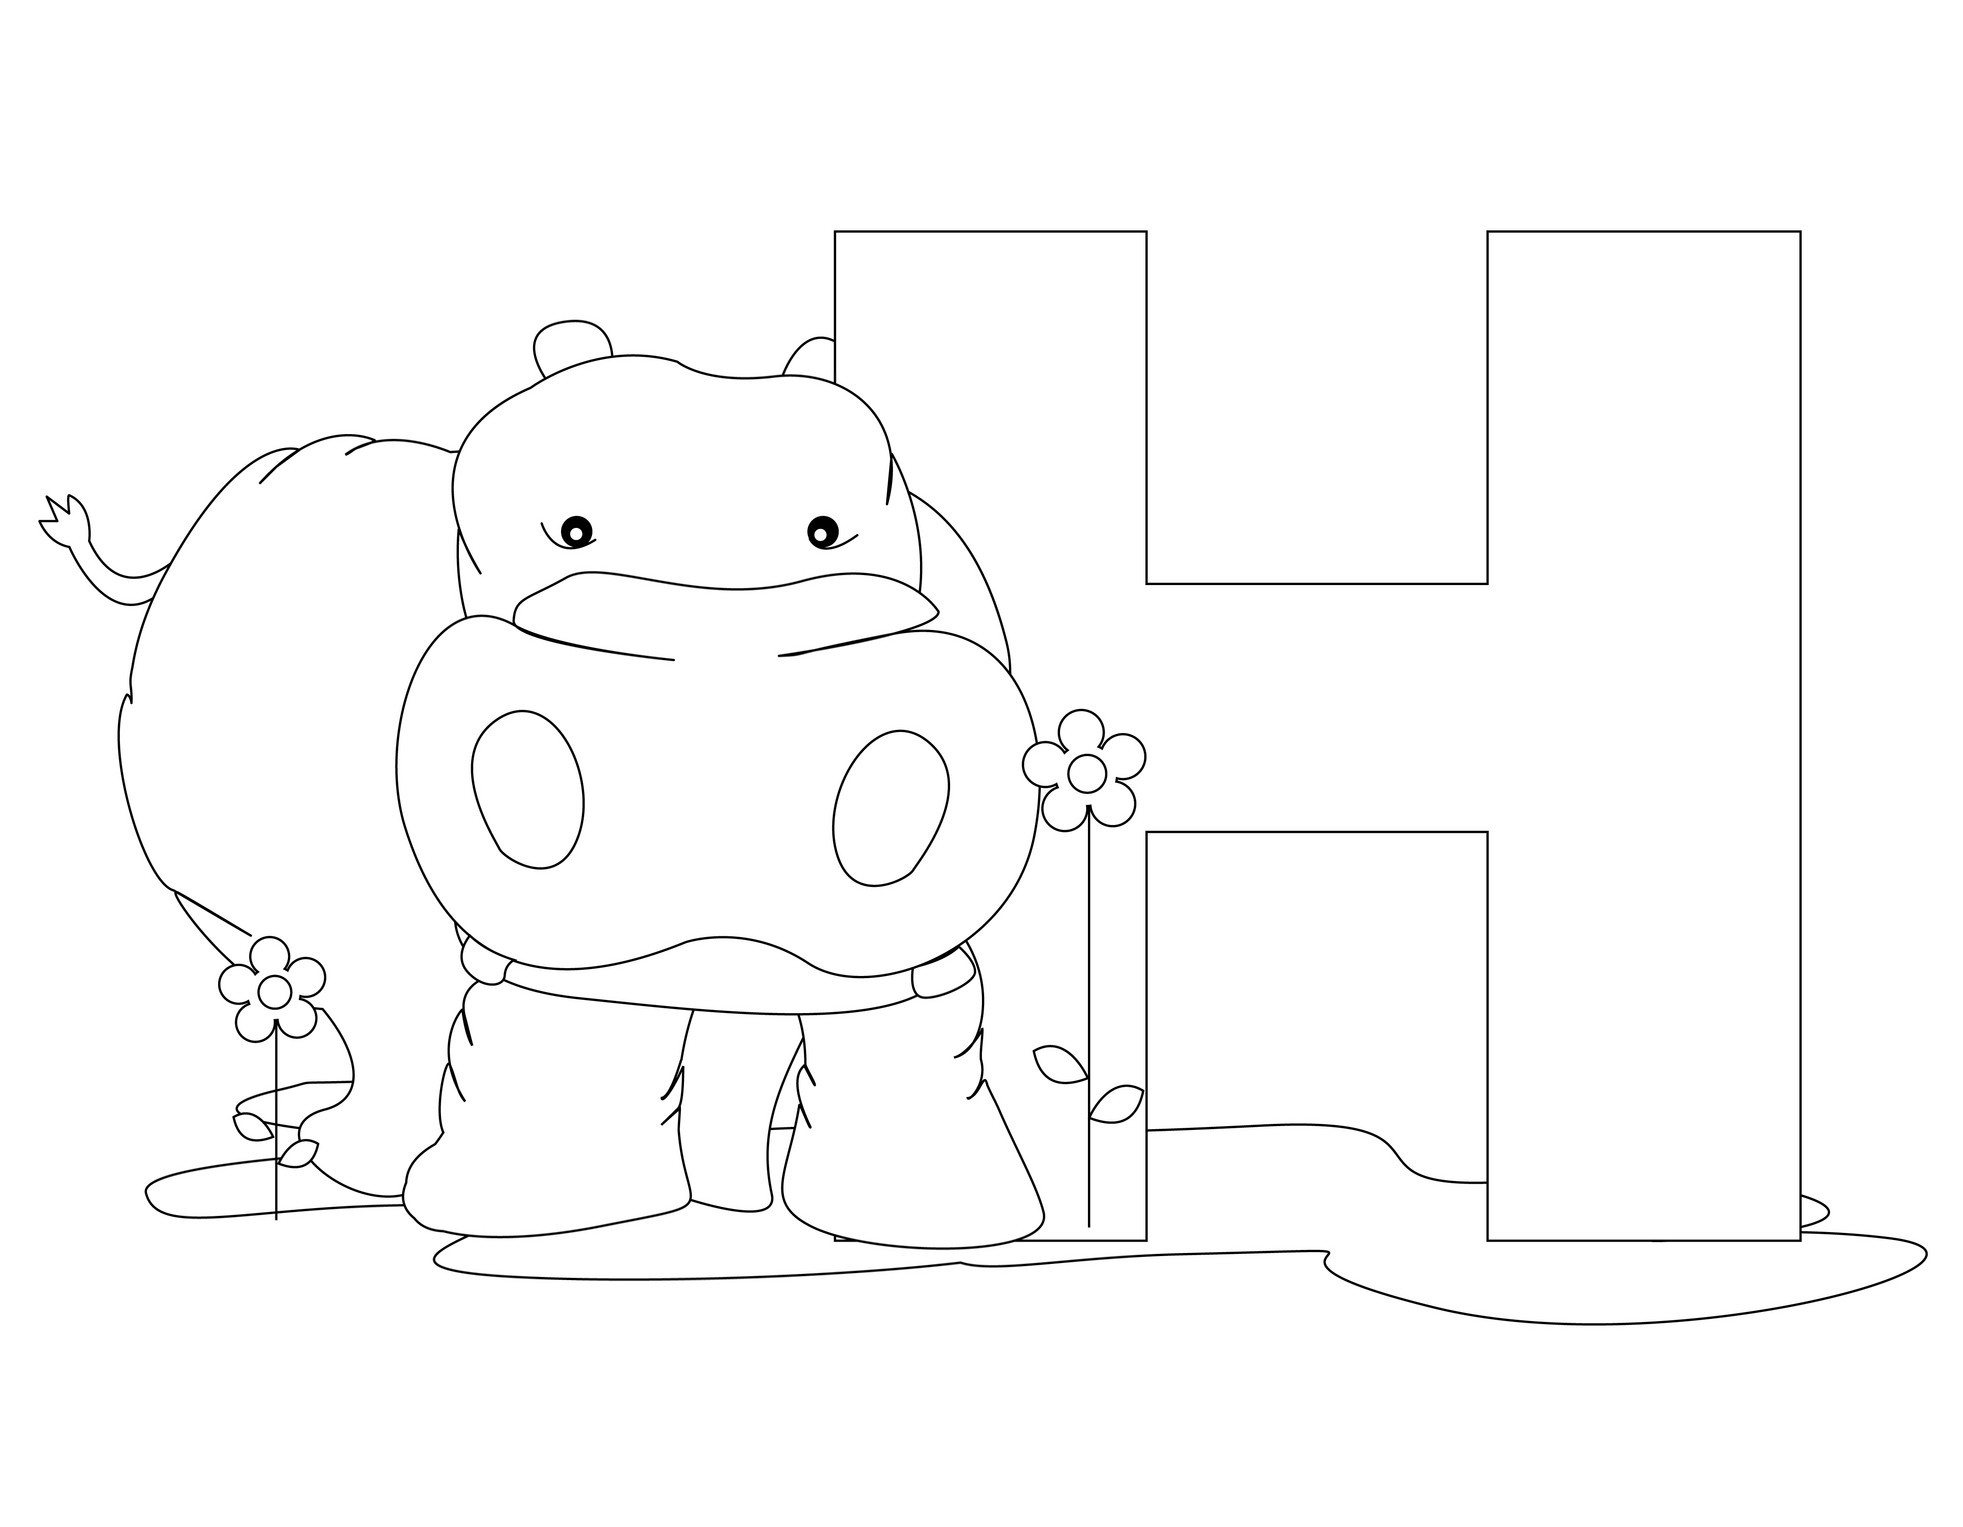 coloring pages for kdis - photo#18